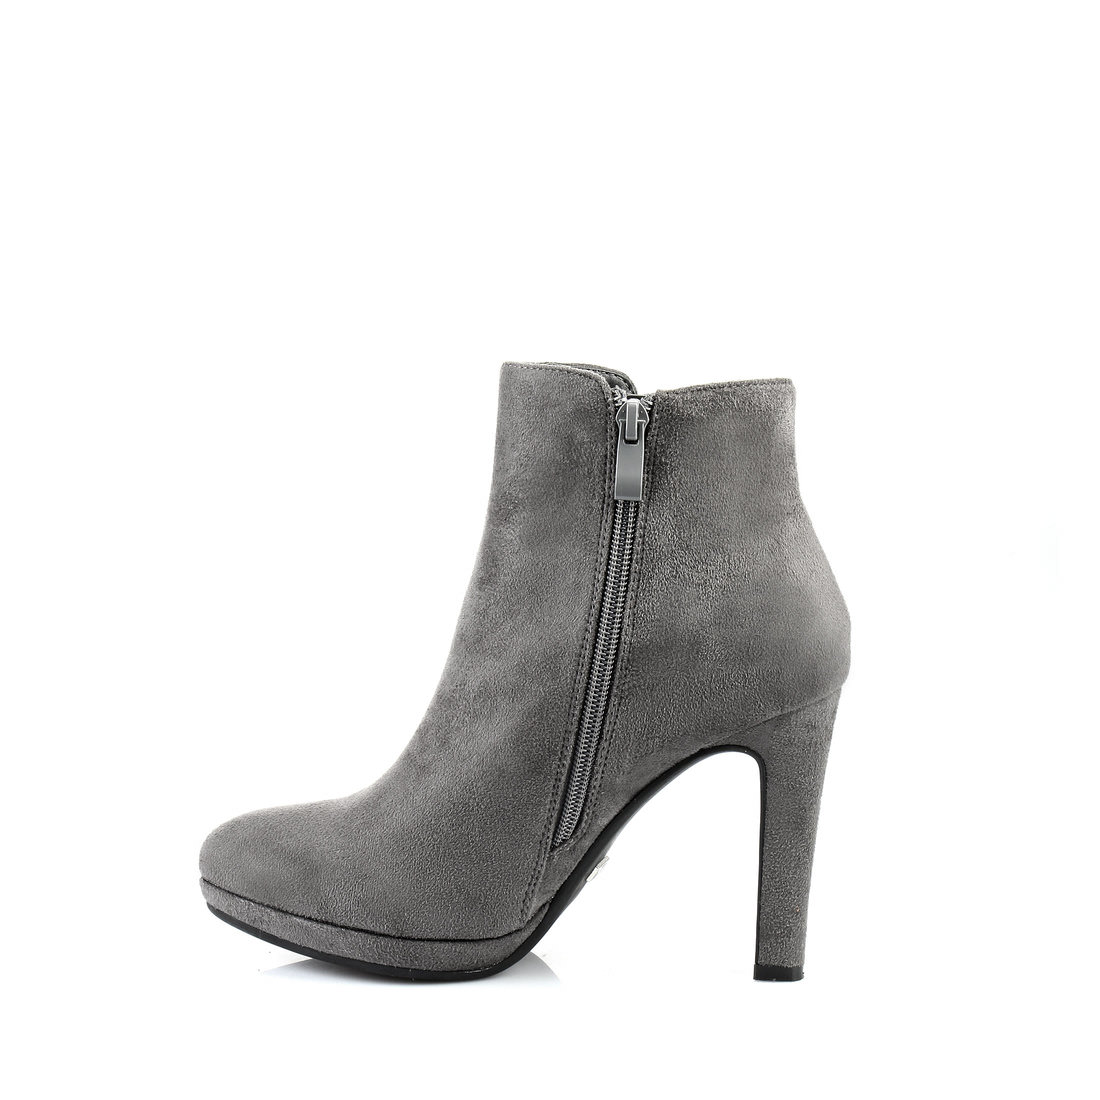 buffalo plateau ankle boots in grey buy online in buffalo online shop buffalo. Black Bedroom Furniture Sets. Home Design Ideas